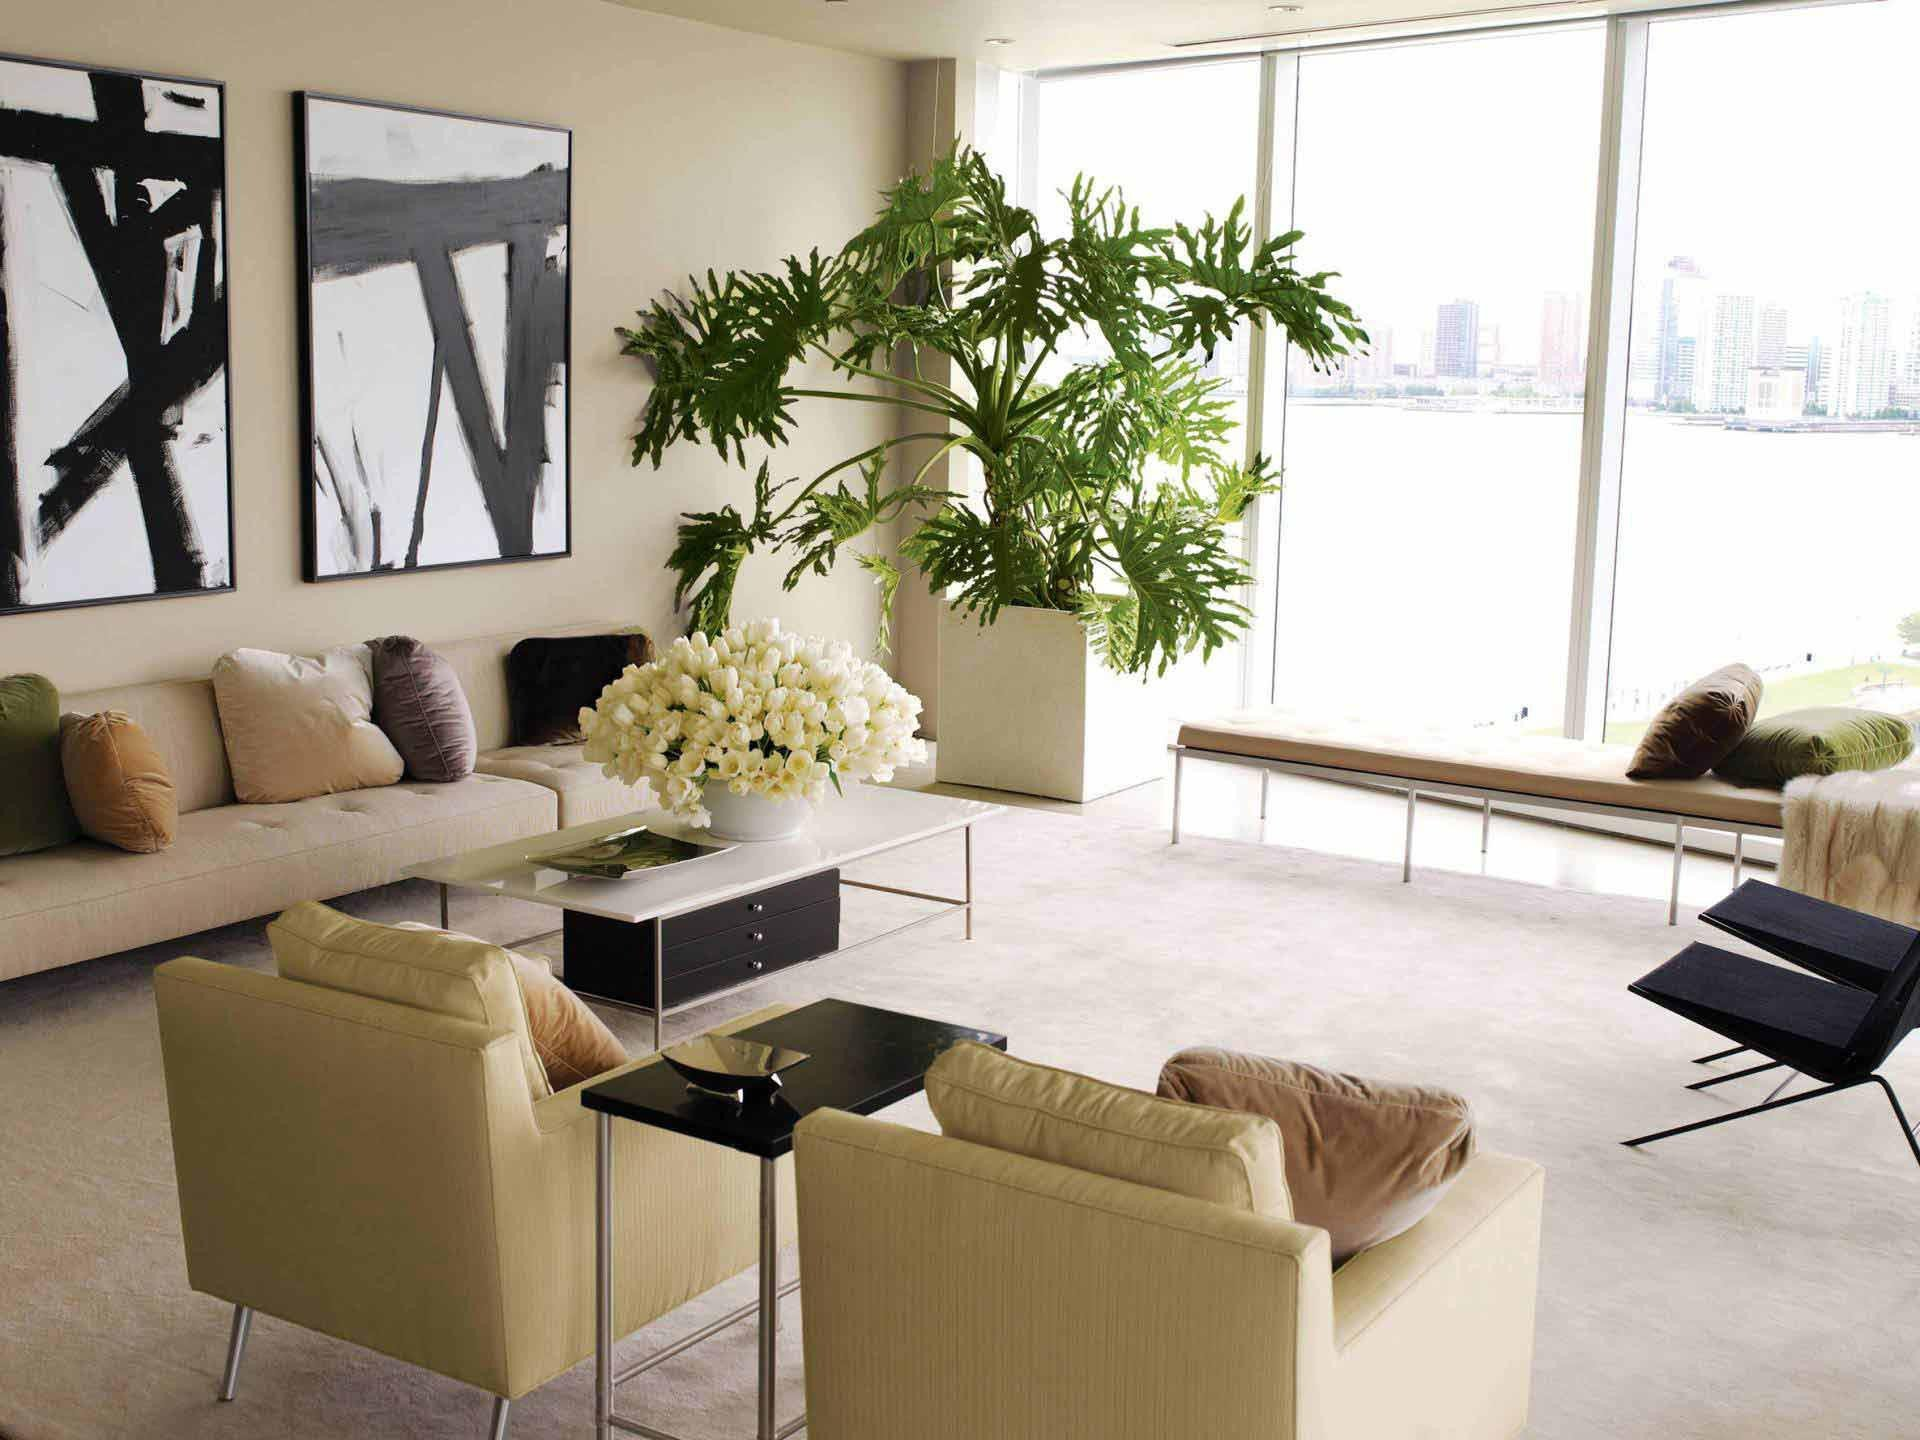 Modern Living Room Decorating Ideas Plant Decorating Our Homes with Plants Interior Design Explained